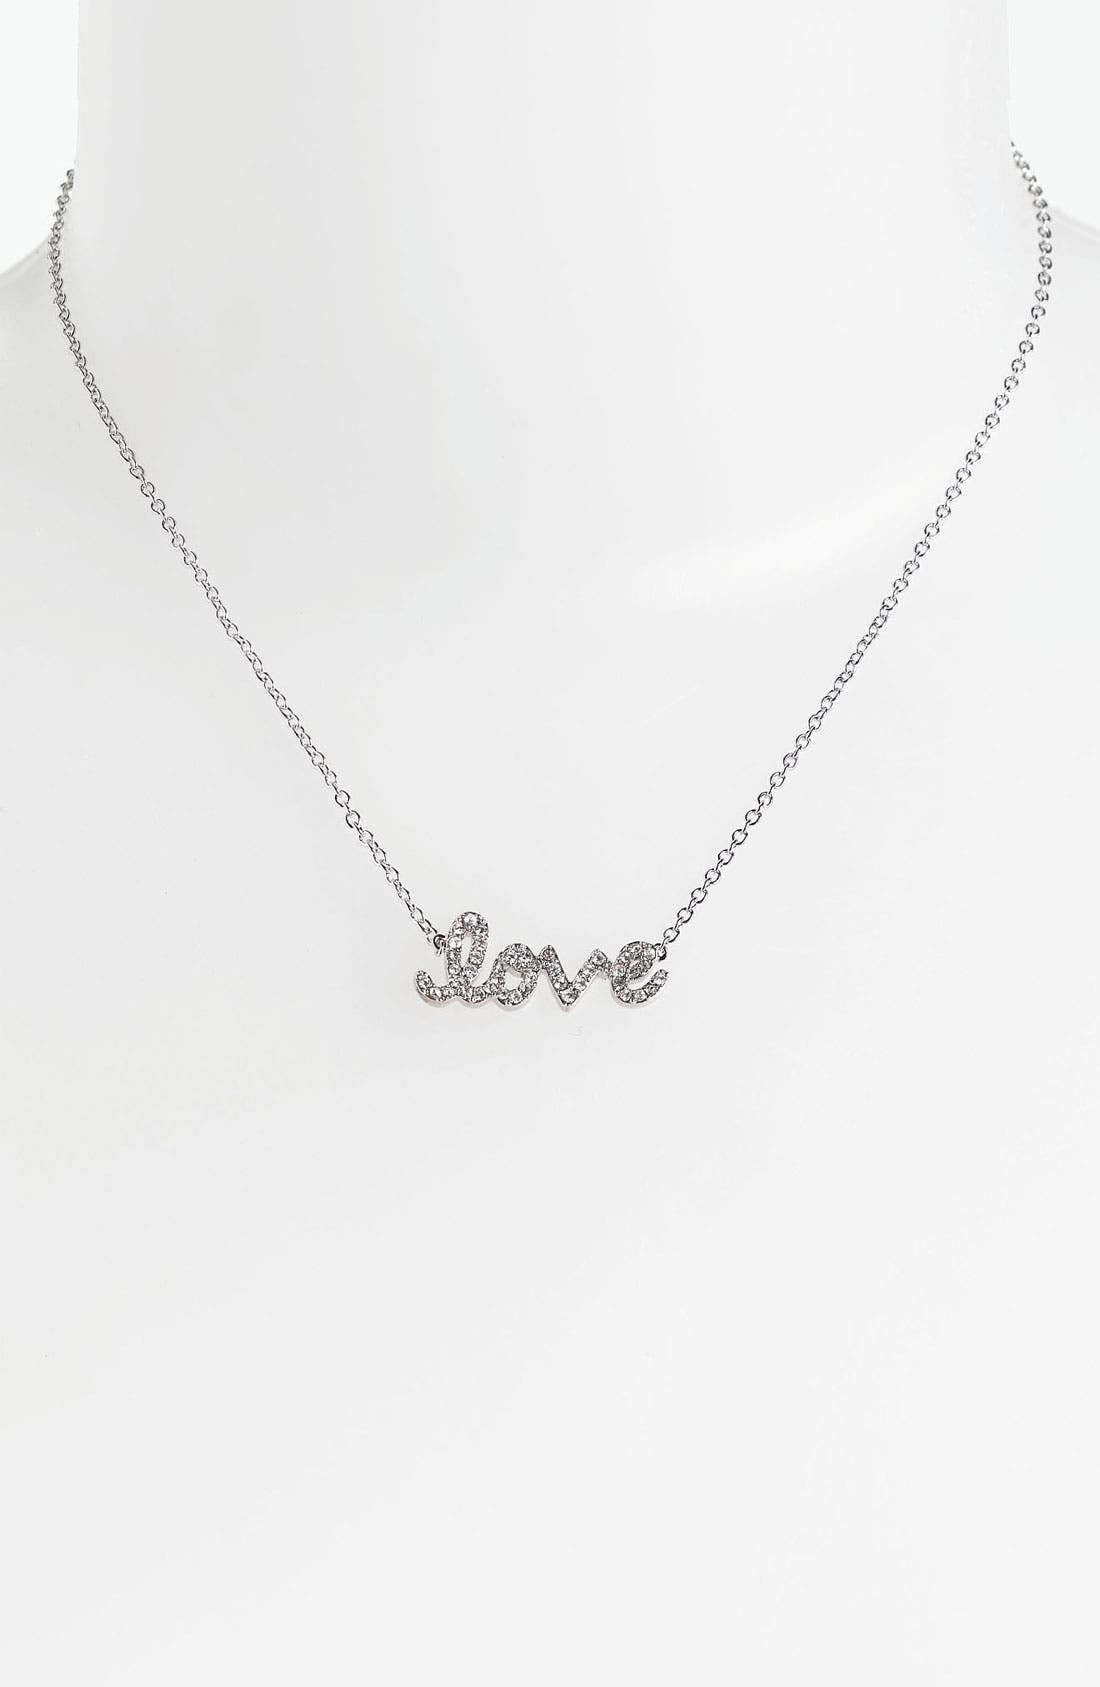 'Messages - Love' Script Pendant Necklace,                             Main thumbnail 1, color,                             Love- Silver/ Clear